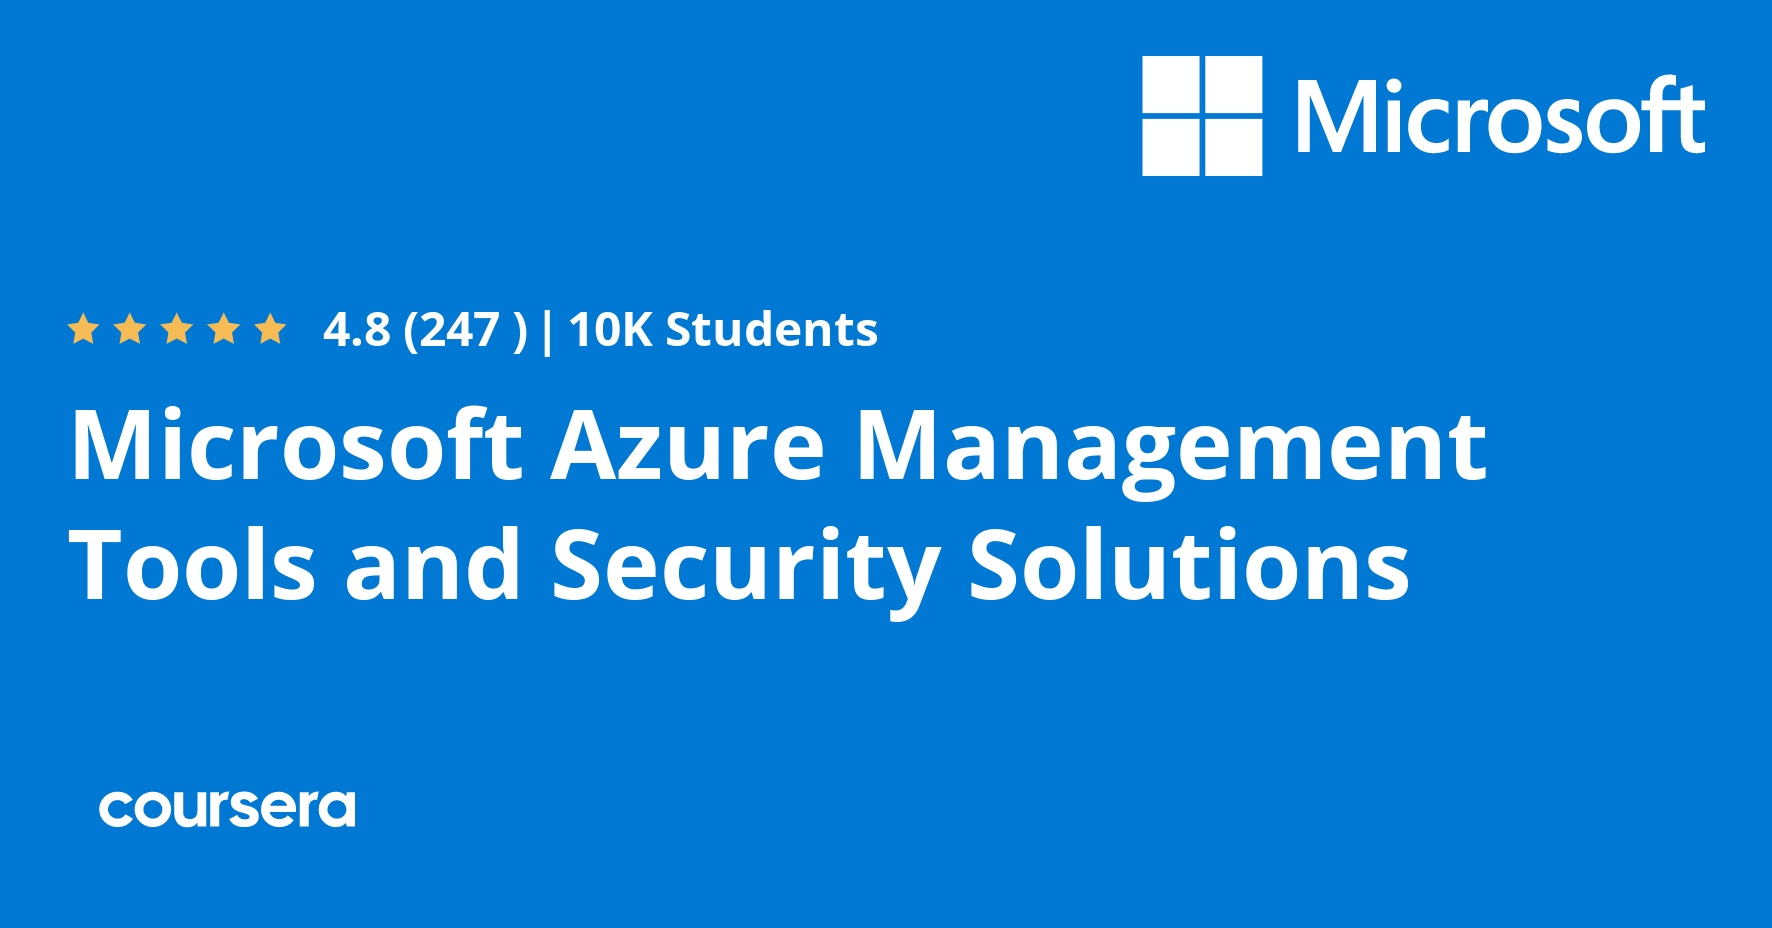 free online courses for https://s3.amazonaws.com/coursera_assets/meta_images/generated/XDP/XDP~COURSE!~microsoft-azure-management-security/XDP~COURSE!~microsoft-azure-management-security.jpeg